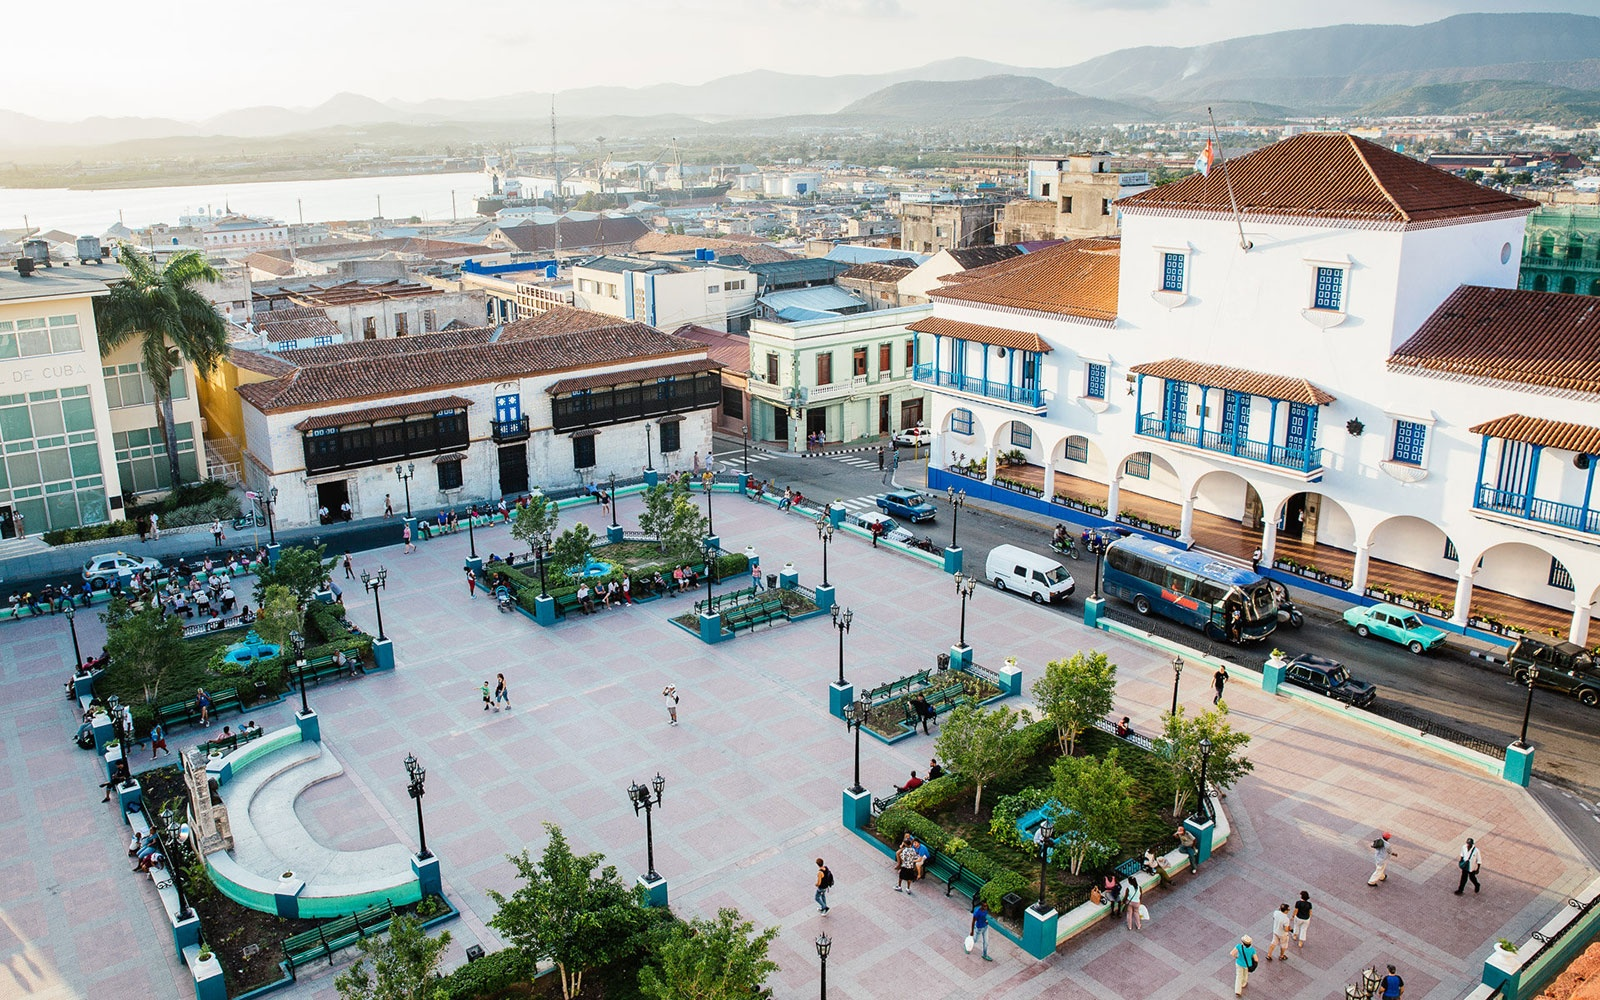 In Santiago de Cuba: Park Yourself in Lively Cespedes